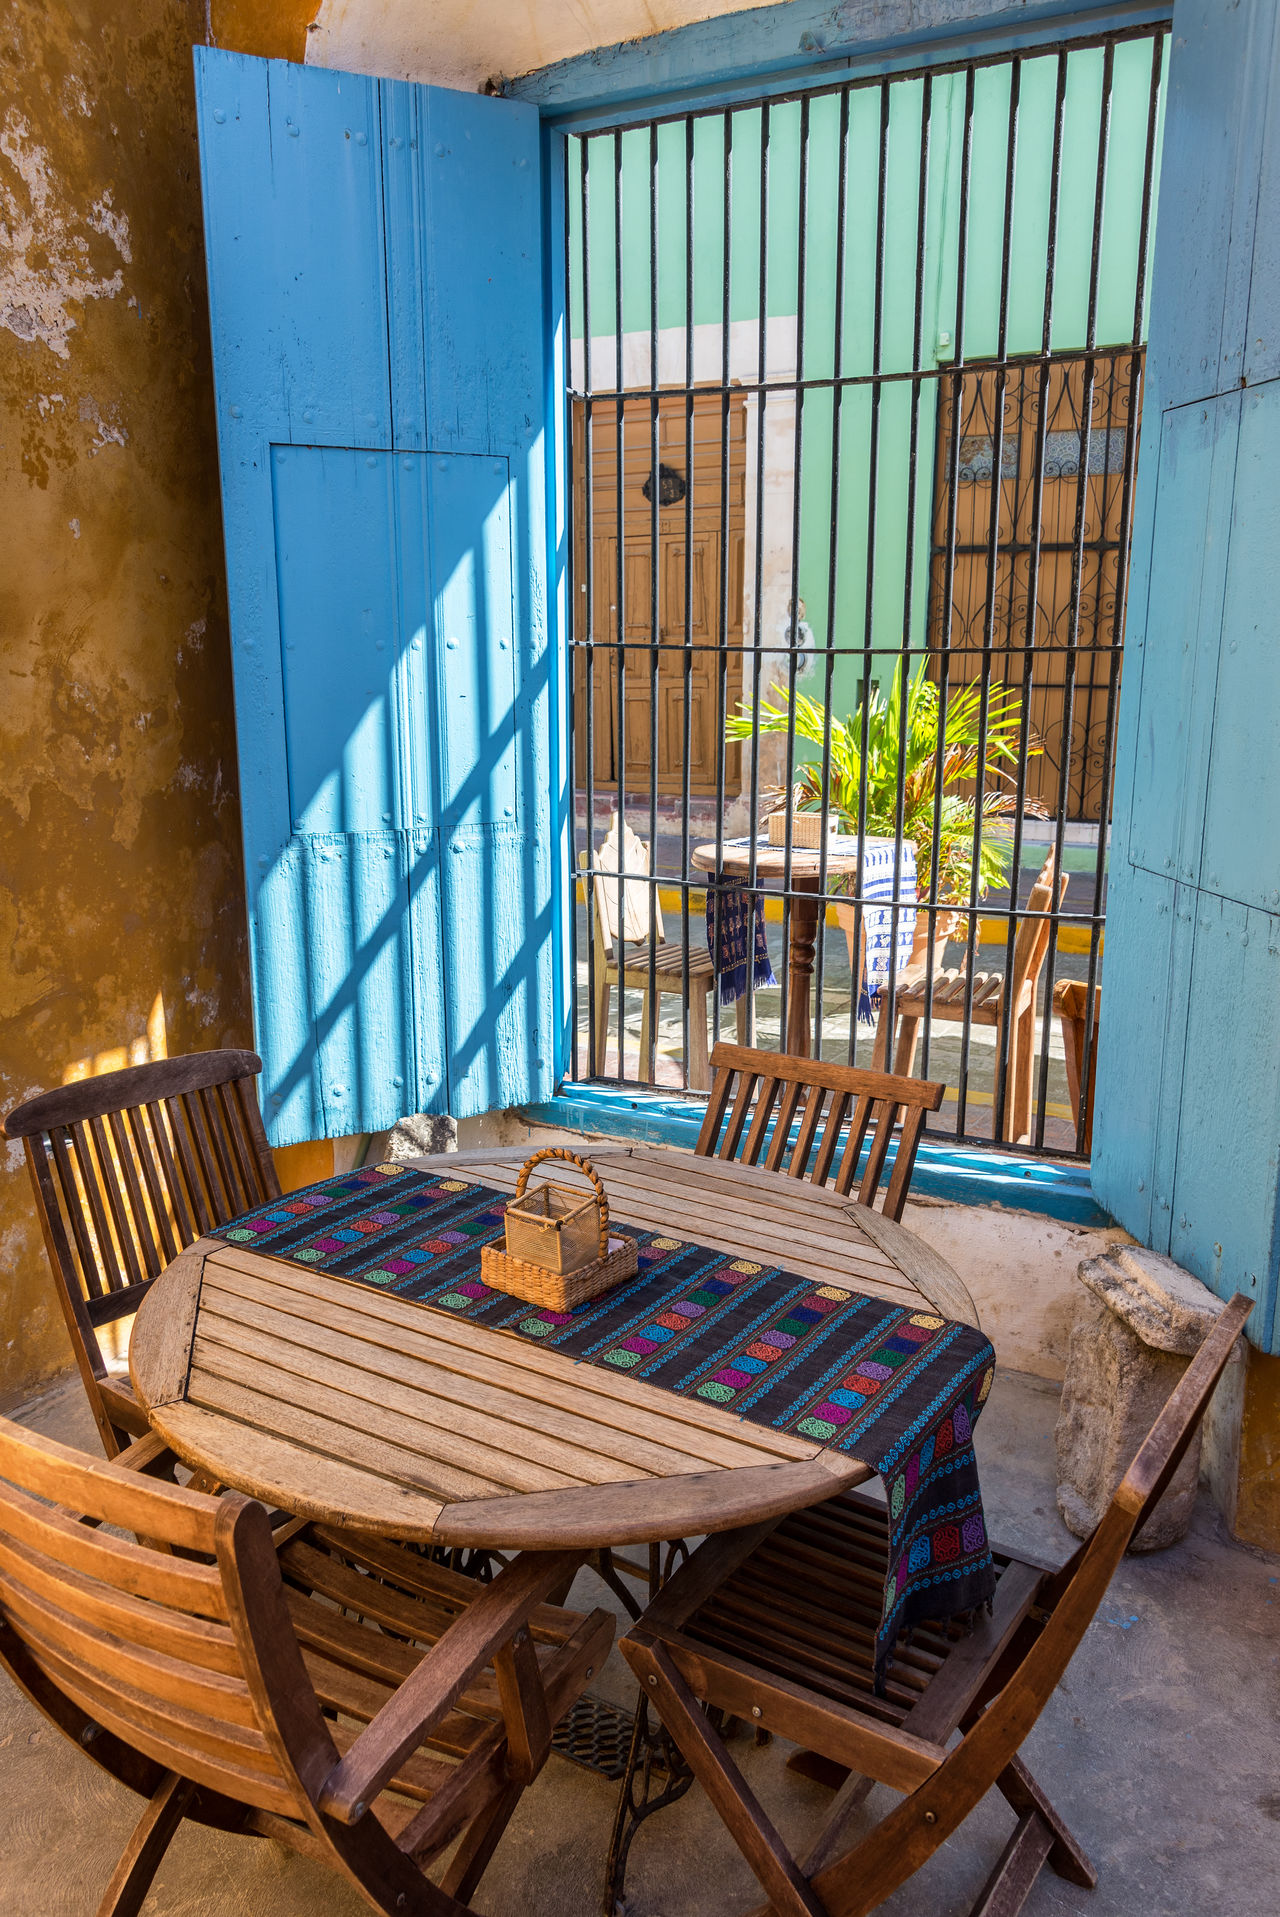 Small outdoor cafe in the historic colonial city of Campeche, Mexico America Architecture Building Campeche Caribbean City Cityscape Colonial Downtown Heritage Historic Houses Landmark Latin Mexican Mexico Spanish Square Street Town Unesco UNESCO World Heritage Site Urban Yucatan Mexico Yúcatan